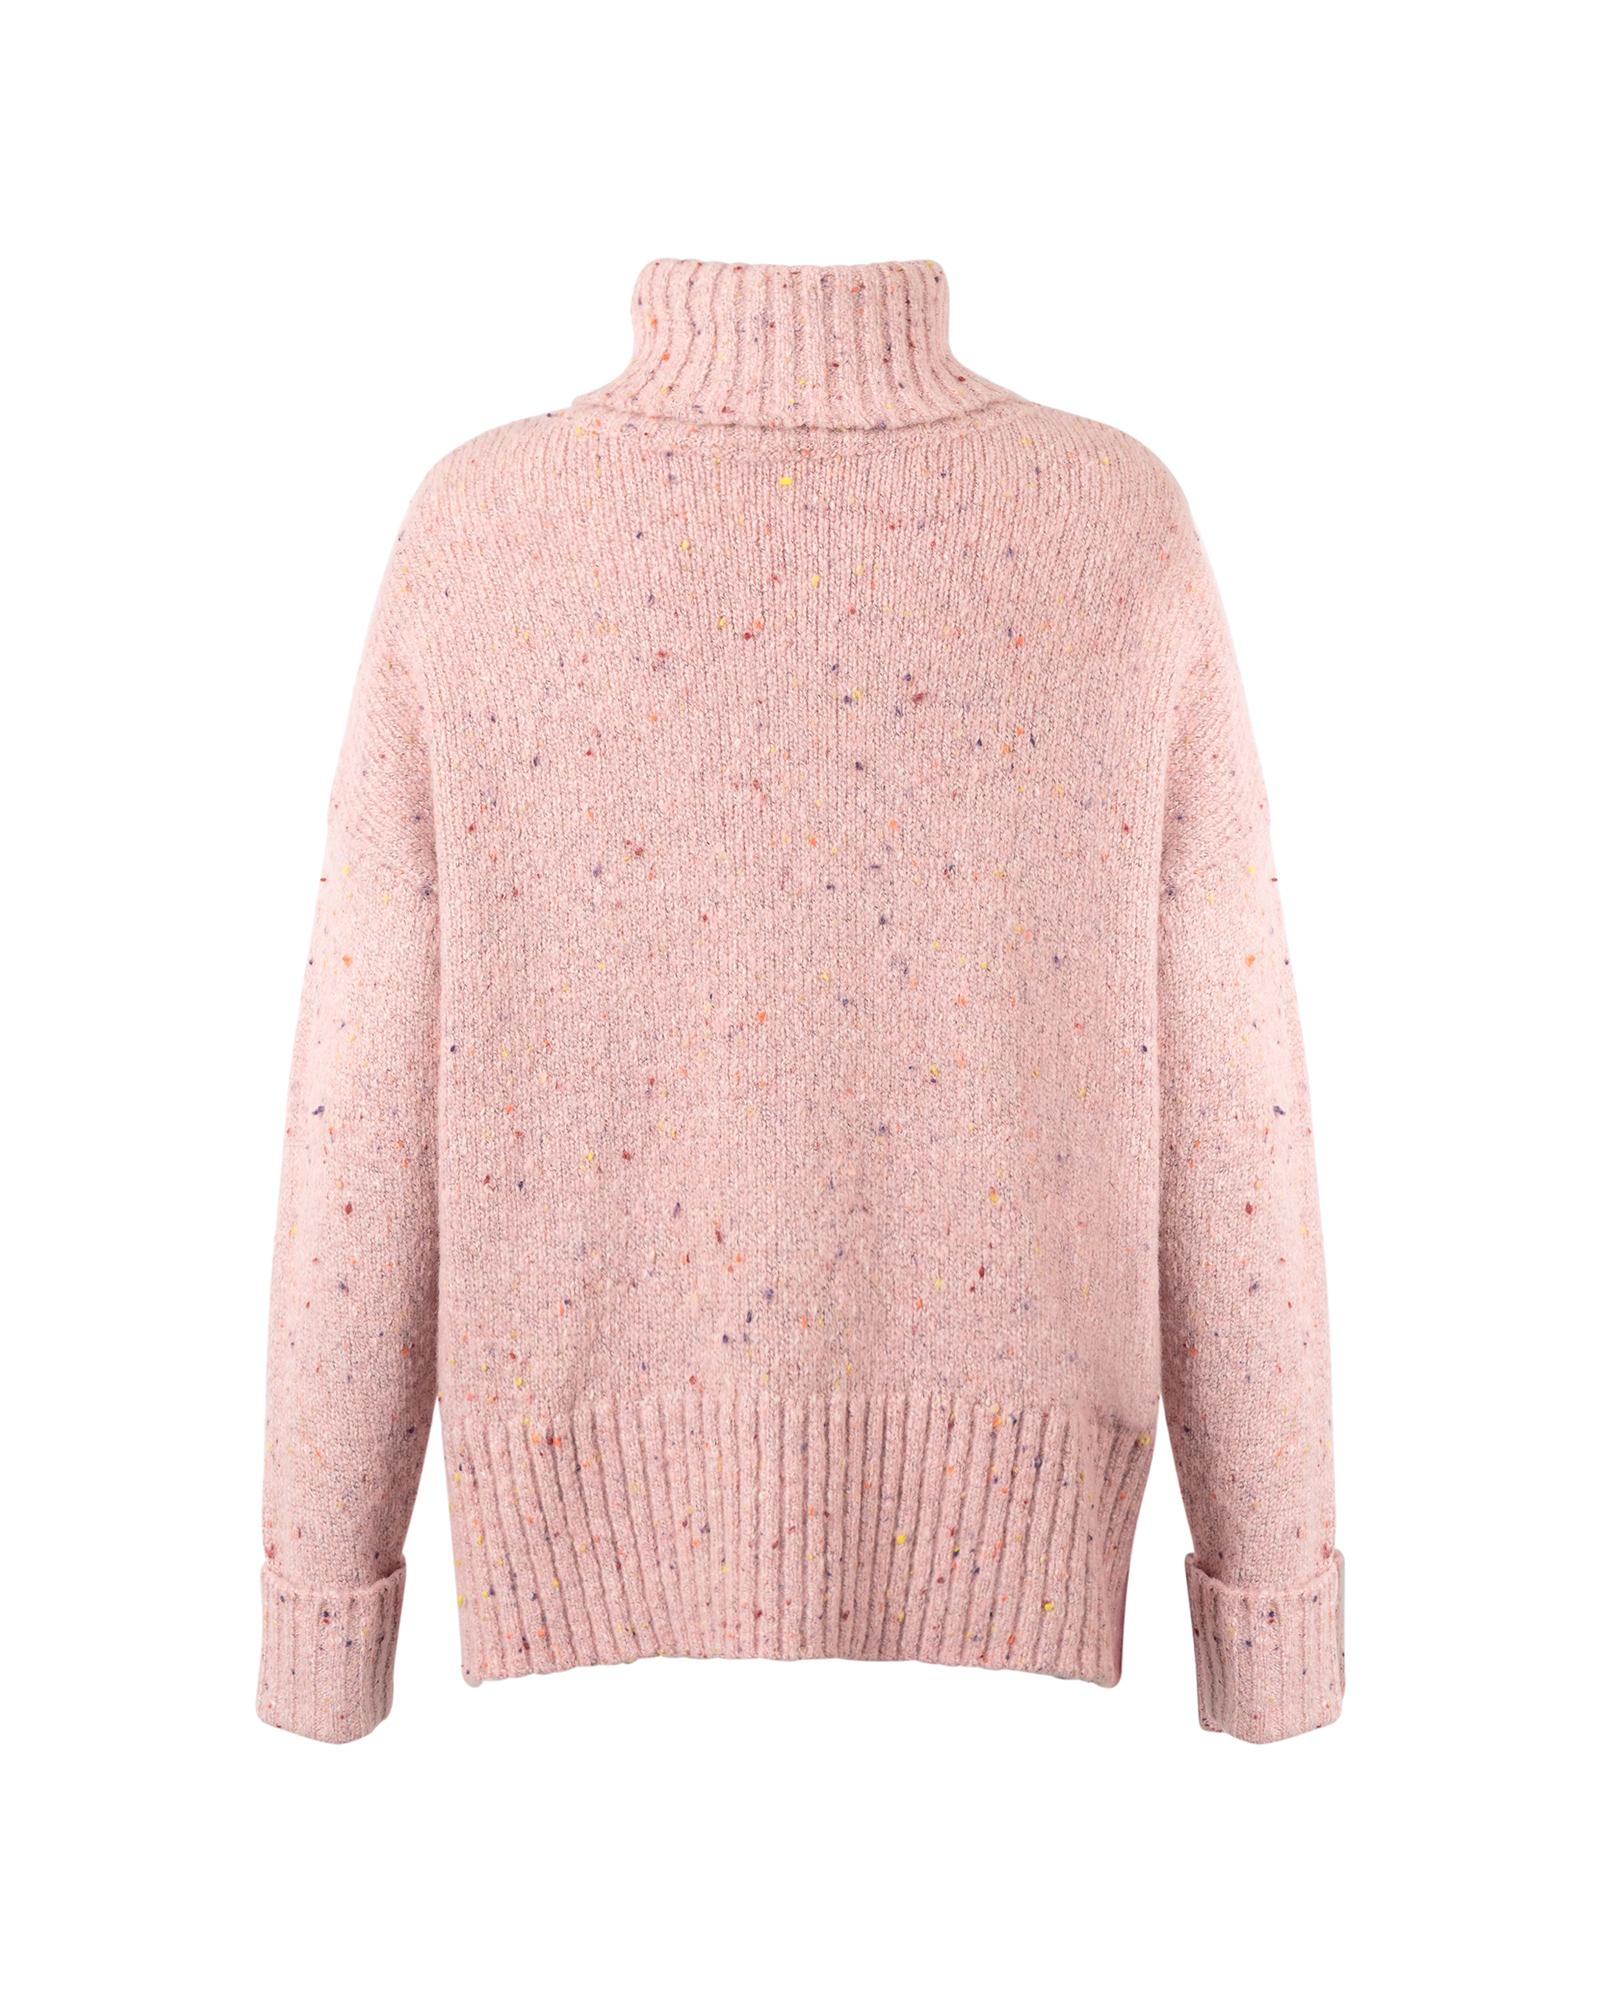 ae12e65c49 Lyst - Oliver Bonas Pepper Pink Nepped Roll Neck Jumper in Pink